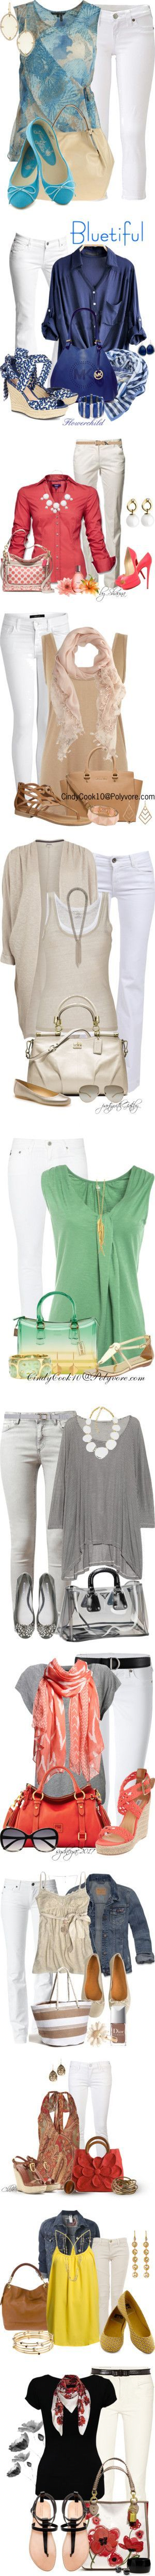 """""""Let's Wear White"""" by esha2001 on Polyvore"""